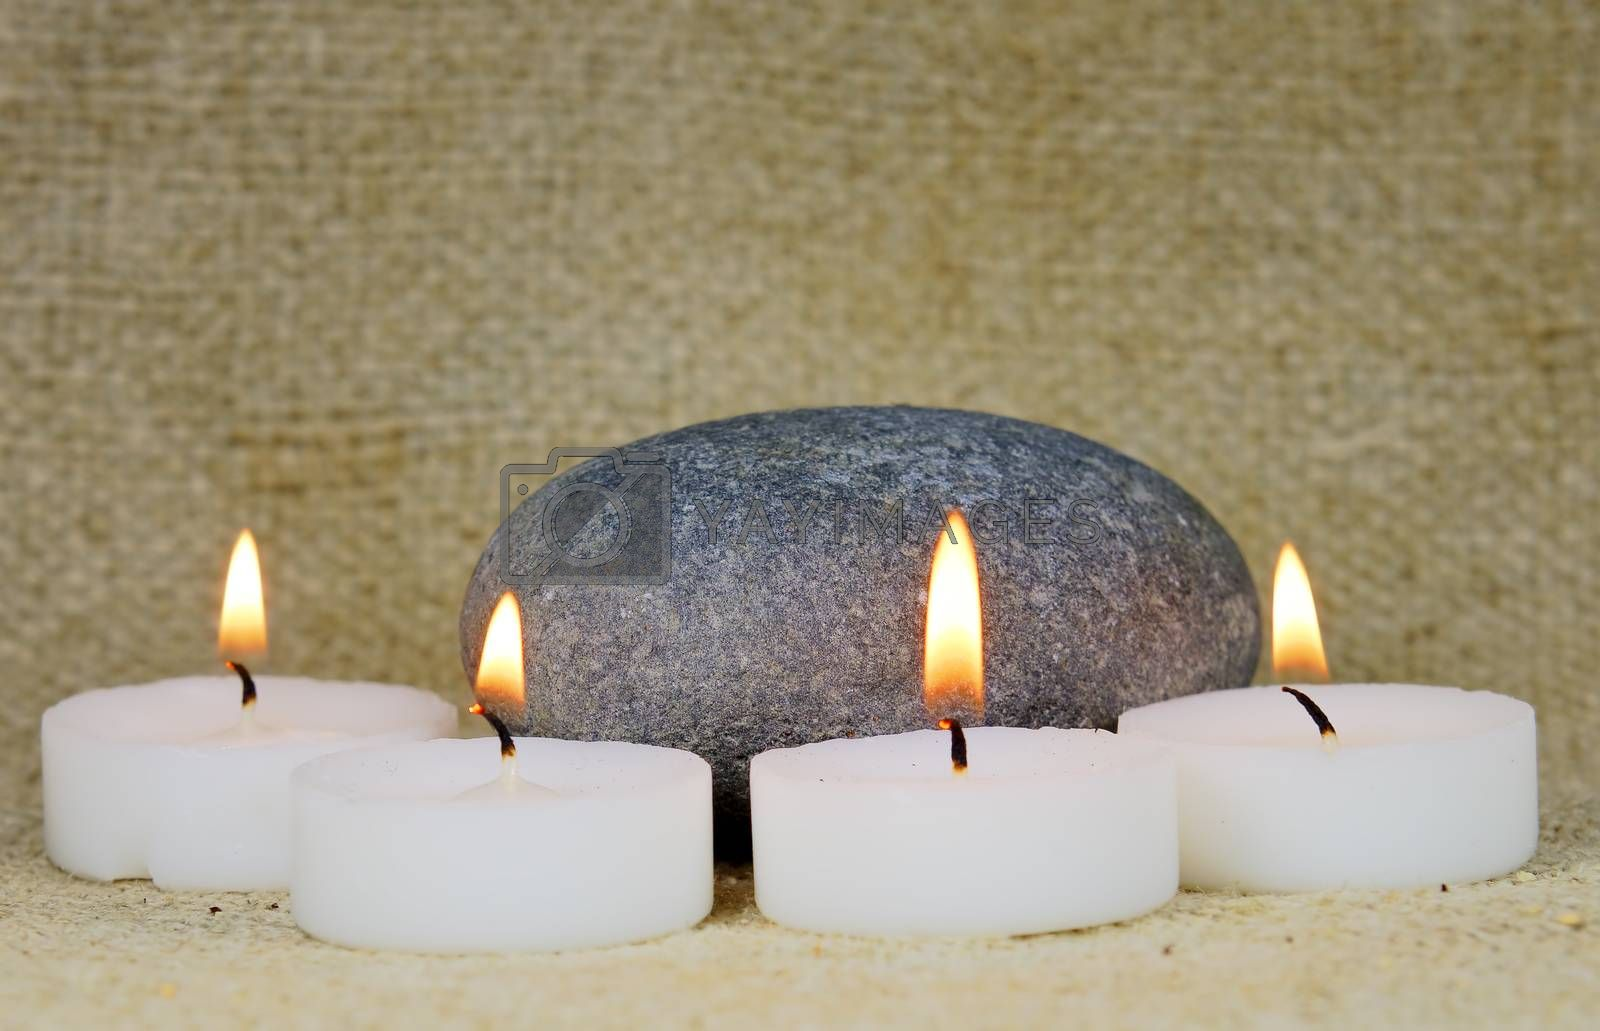 pebble surrounded by candles